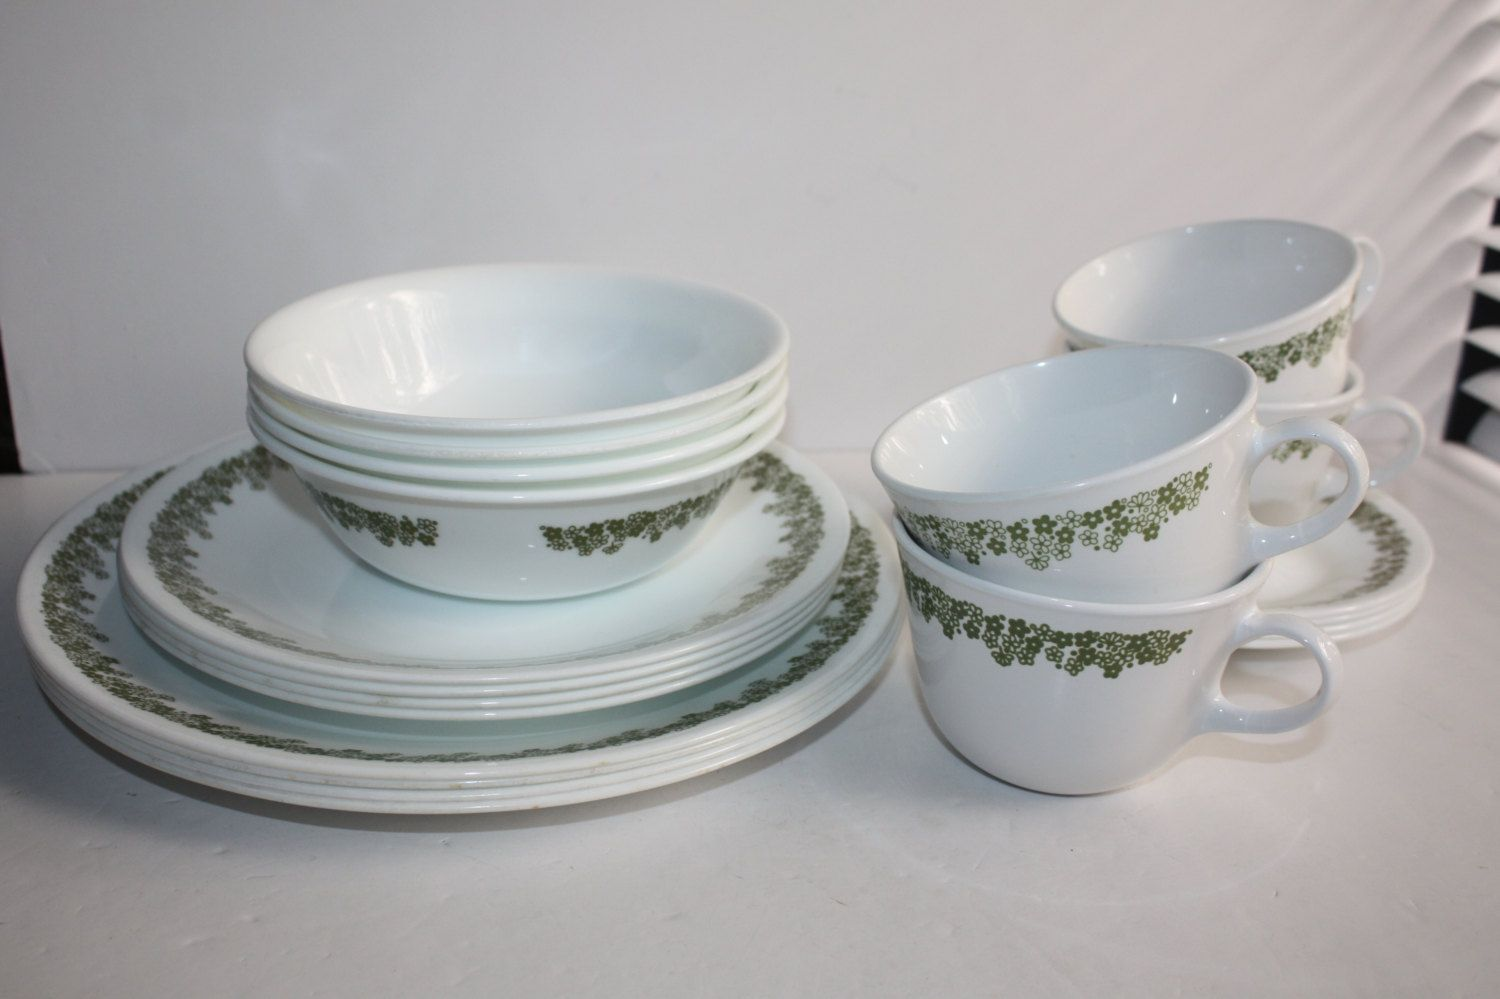 Vintage Corelle Crazy Daisy/Spring Blossom Dish Set Service for 4/Corelle Daisy Dinnerware/1970\u0027s Corelle Dinnerware & Vintage Corelle Crazy Daisy/Spring Blossom Dish Set Service for 4 ...